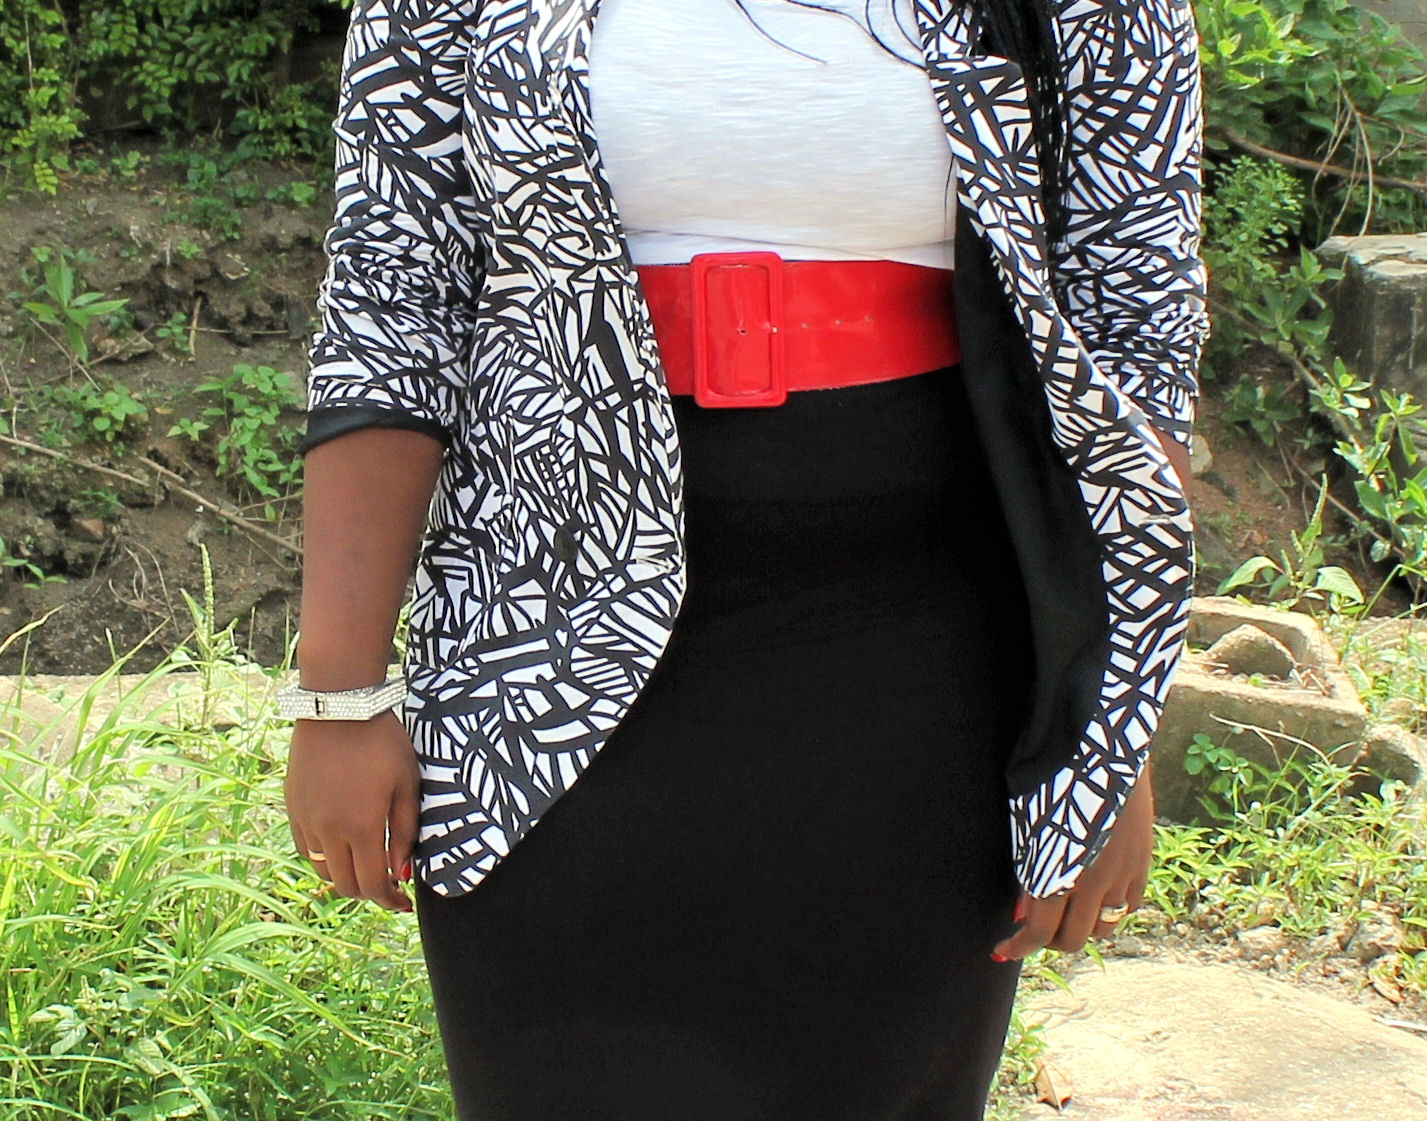 Black dress with touch of red -  Wearing A Red Belt Above The High Waist Pencil Skirt I Didn T Want The Outfit To Look Boring Or Too Serious So The Belt Was To Added To Accomplish It